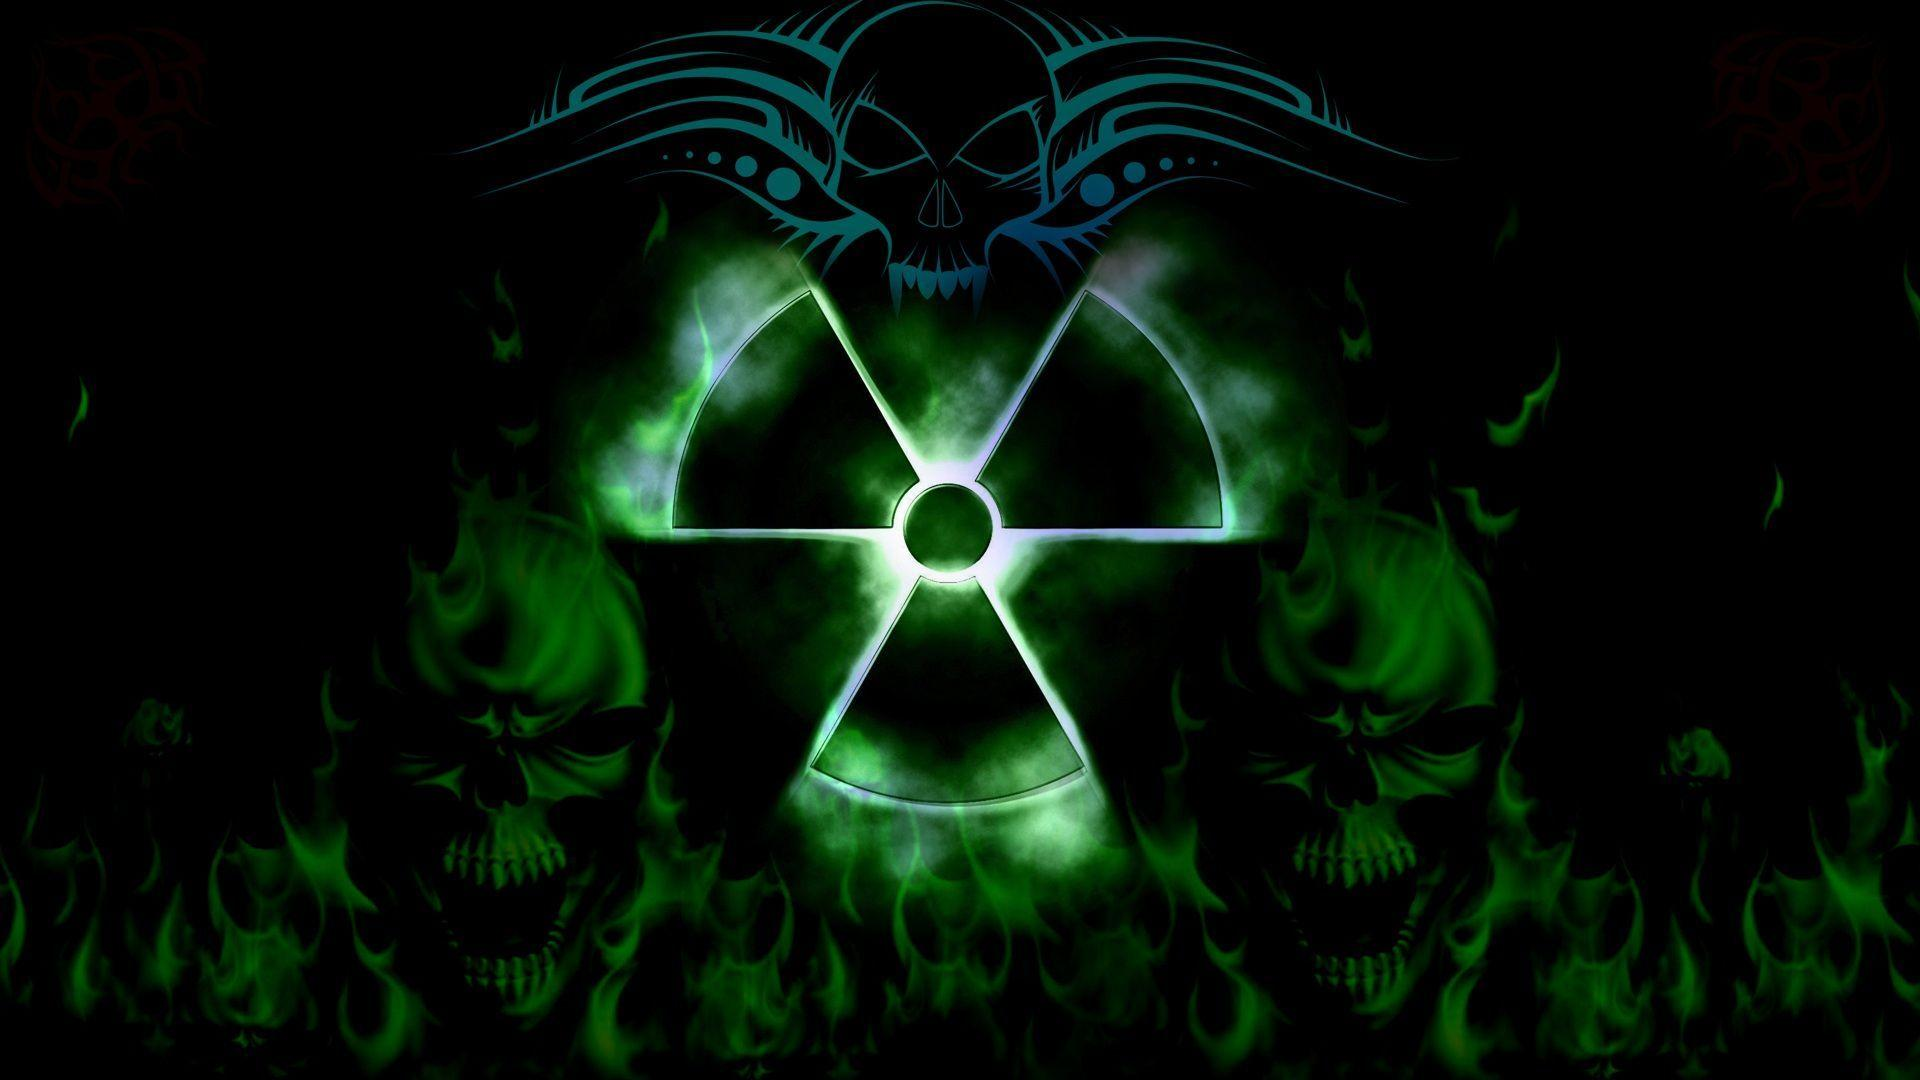 Wallpapers For > Cool Green And Black Skull Backgrounds